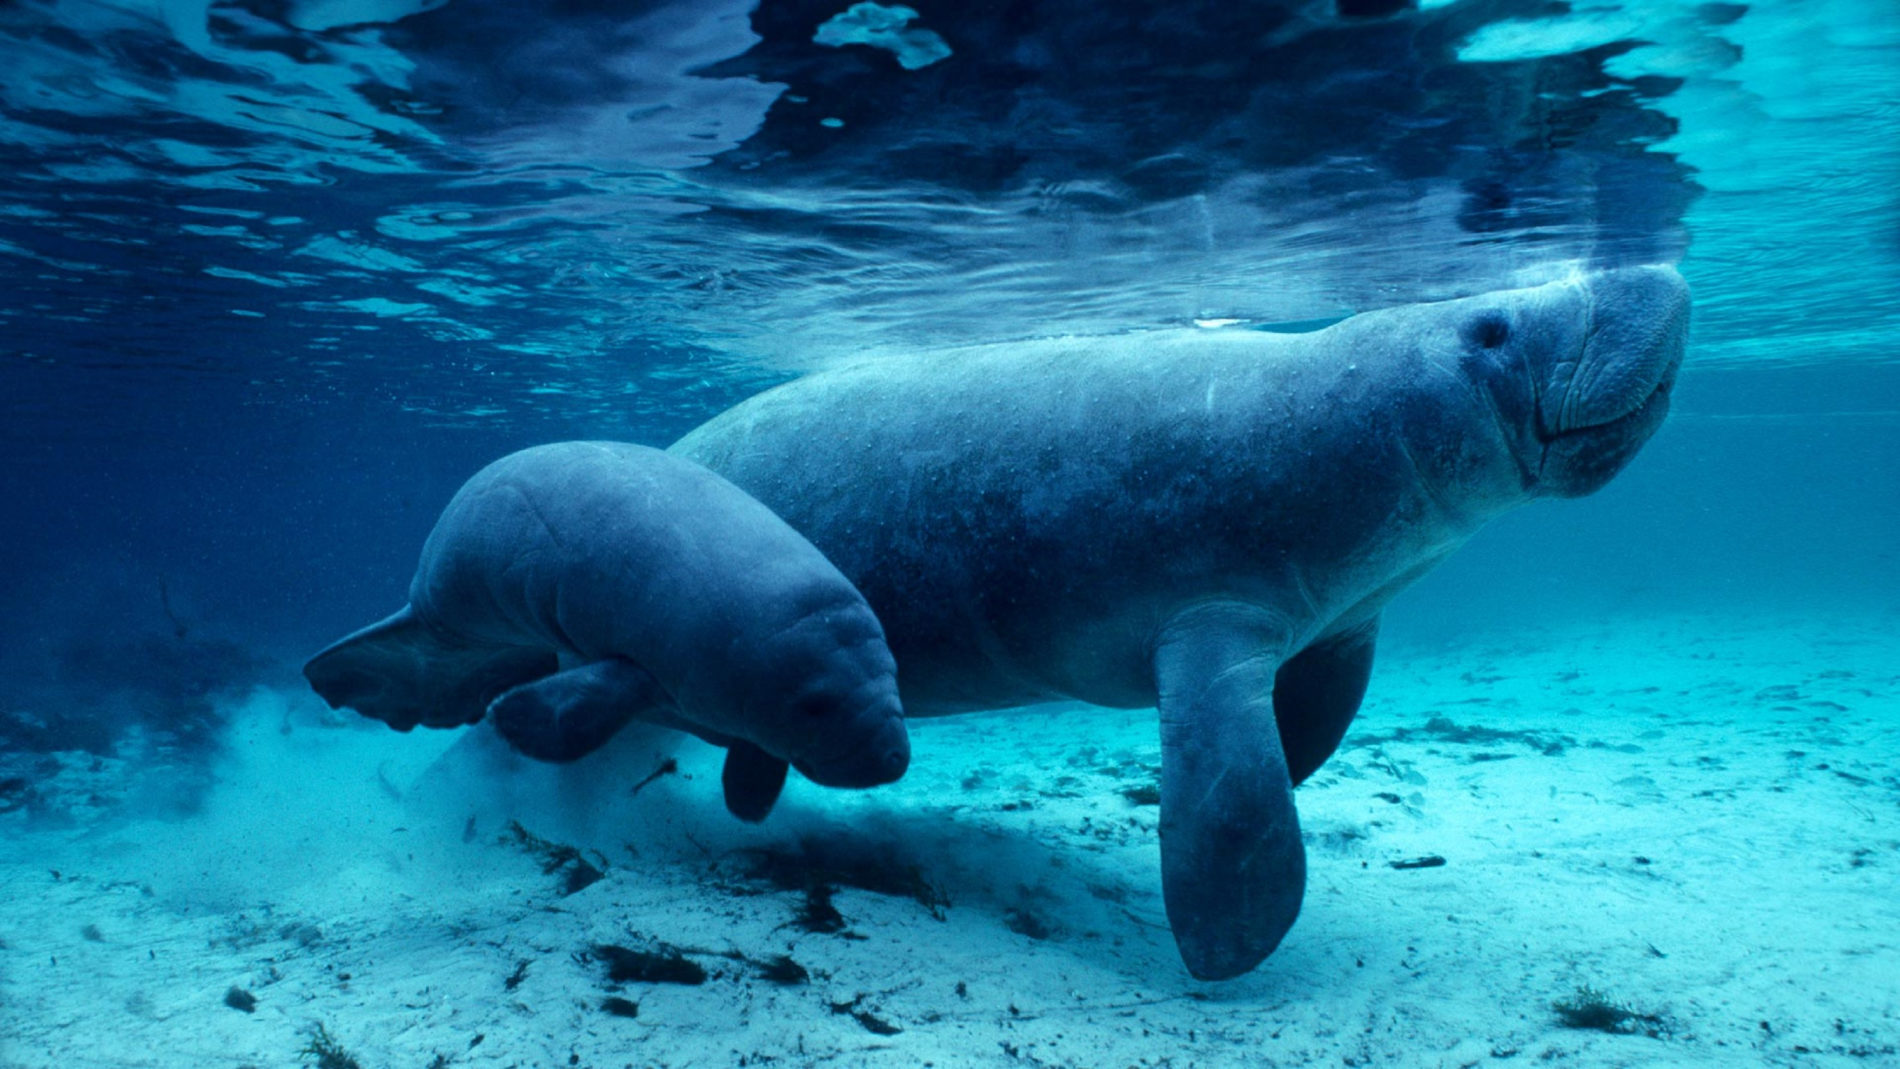 Manatees swimming in crystal-clear water